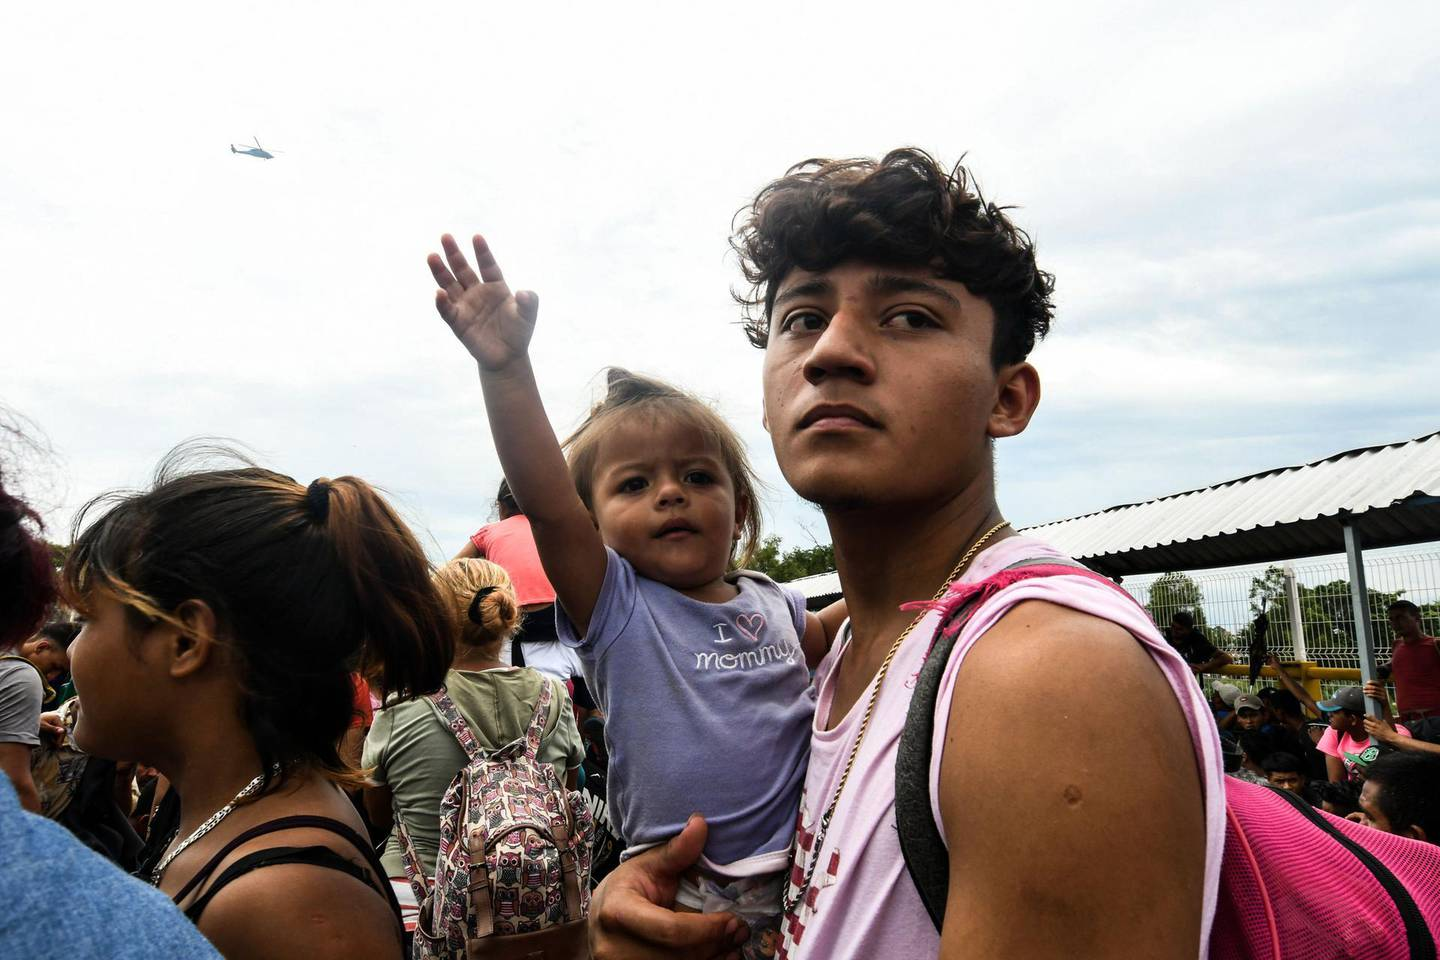 TOPSHOT - Honduran migrants taking part in a caravan heading to the US, arrive at the border crossing point with Mexico, in Ciudad Tecun Uman, Guatemala, on October 19, 2018. Honduran migrants who have made their way through Central America were gathering at Guatemala's northern border with Mexico on Friday, despite President Donald Trump's threat to deploy the military to stop them entering the United States. / AFP / ORLANDO SIERRA